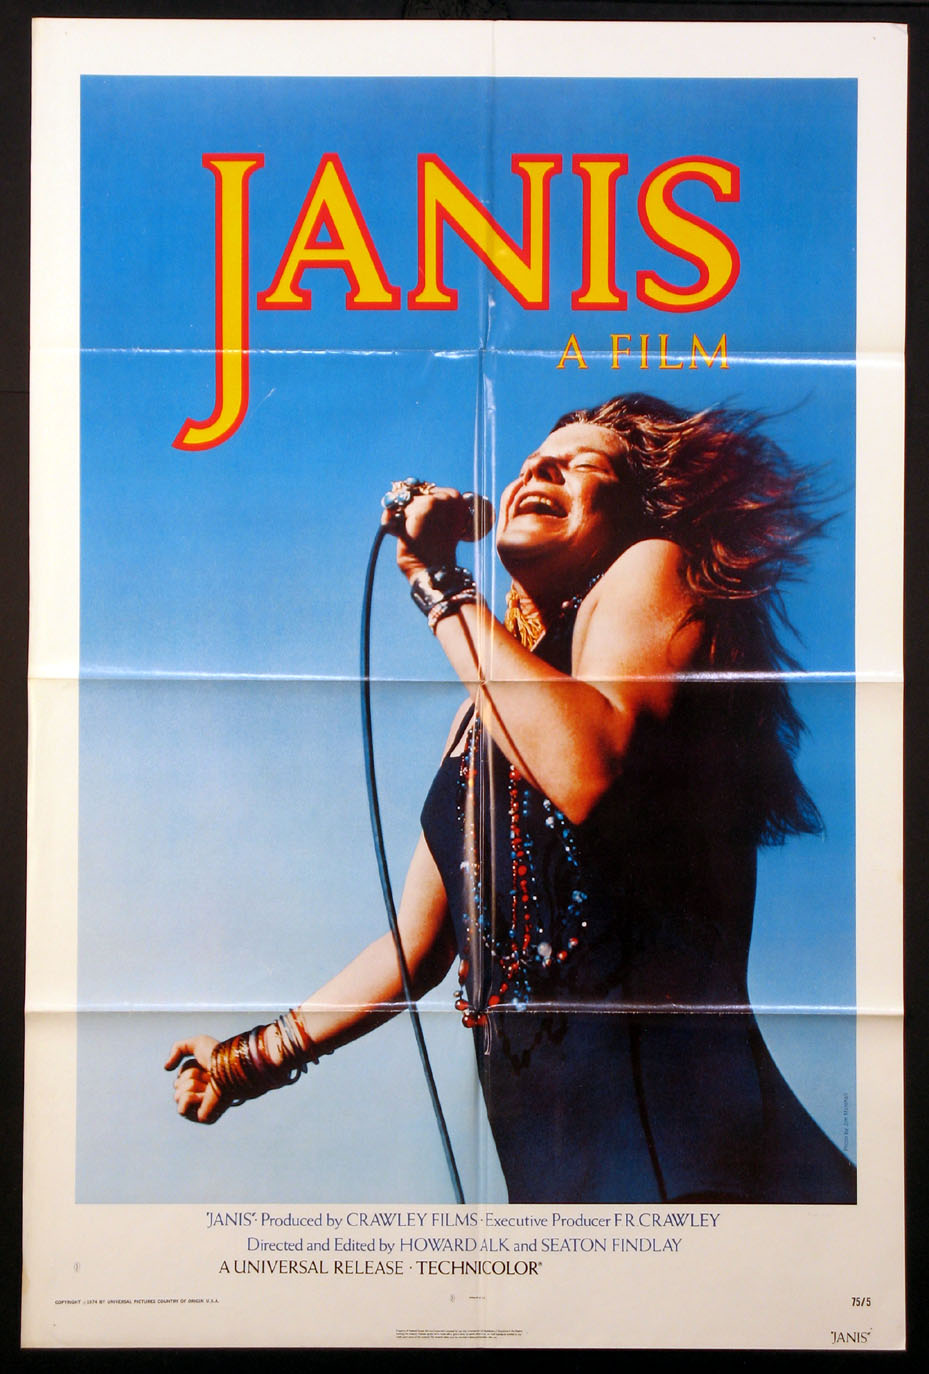 JANIS @ FilmPosters.com